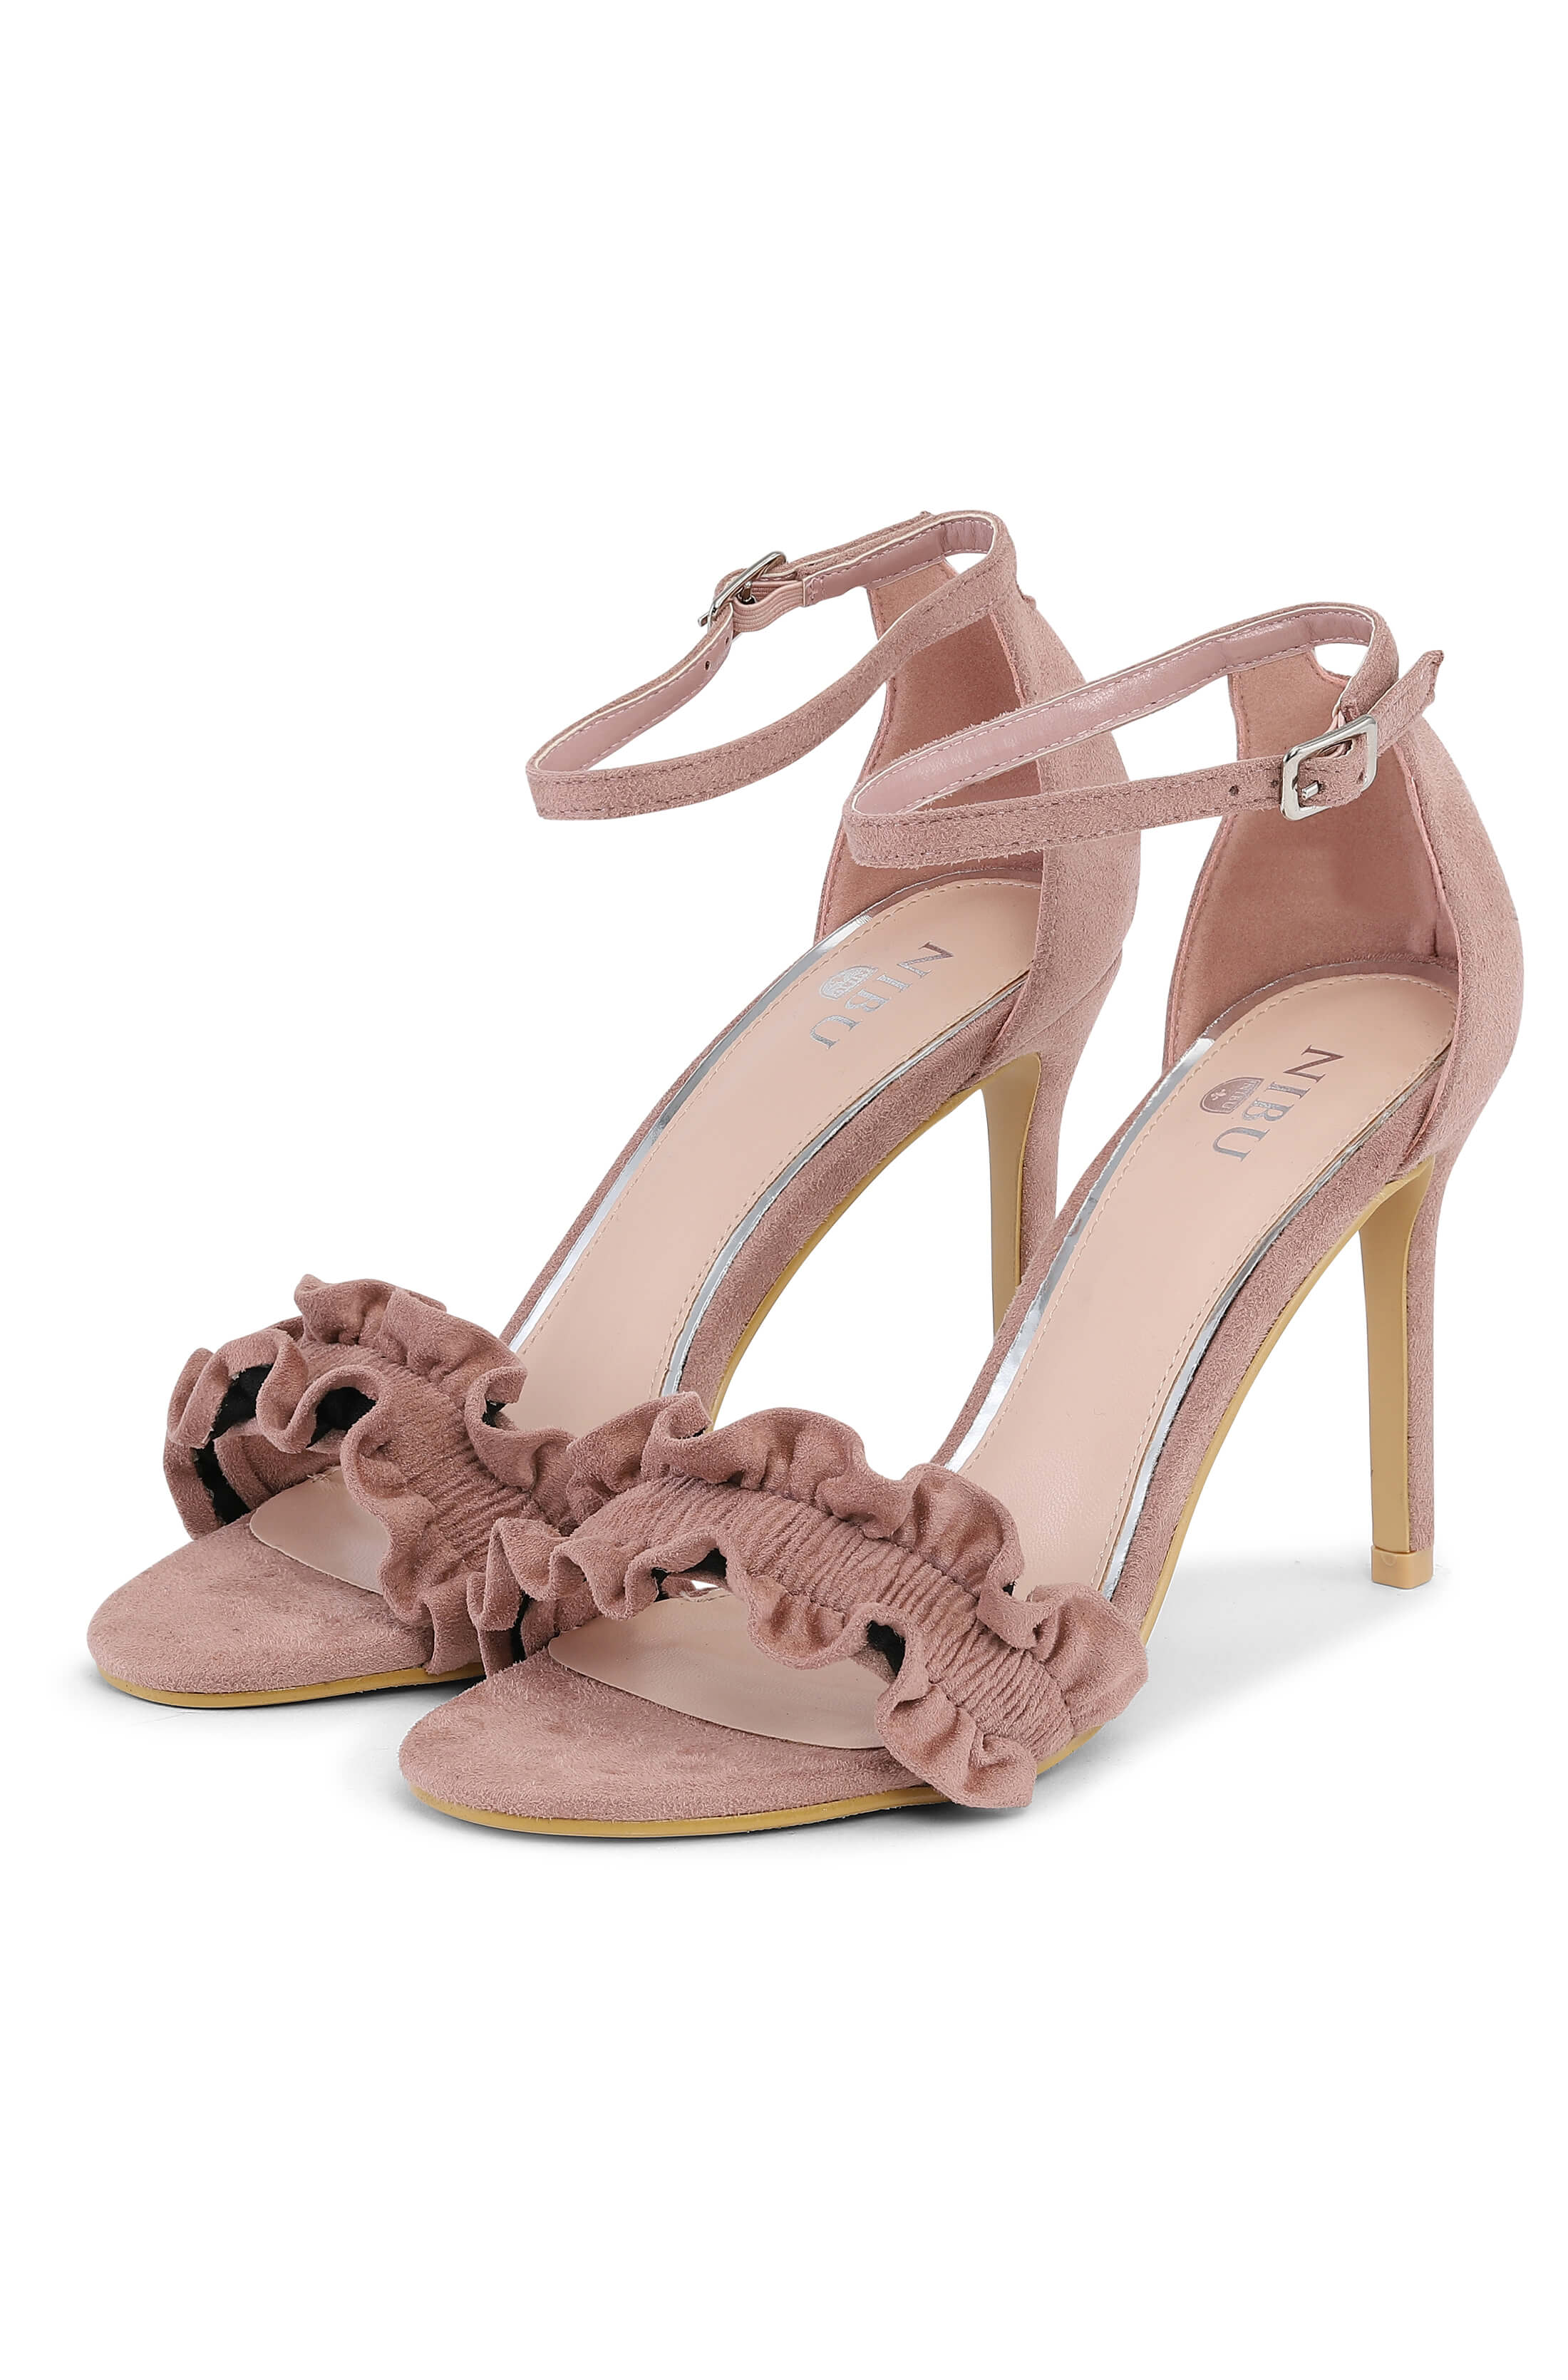 High heeled sunset beige sandal